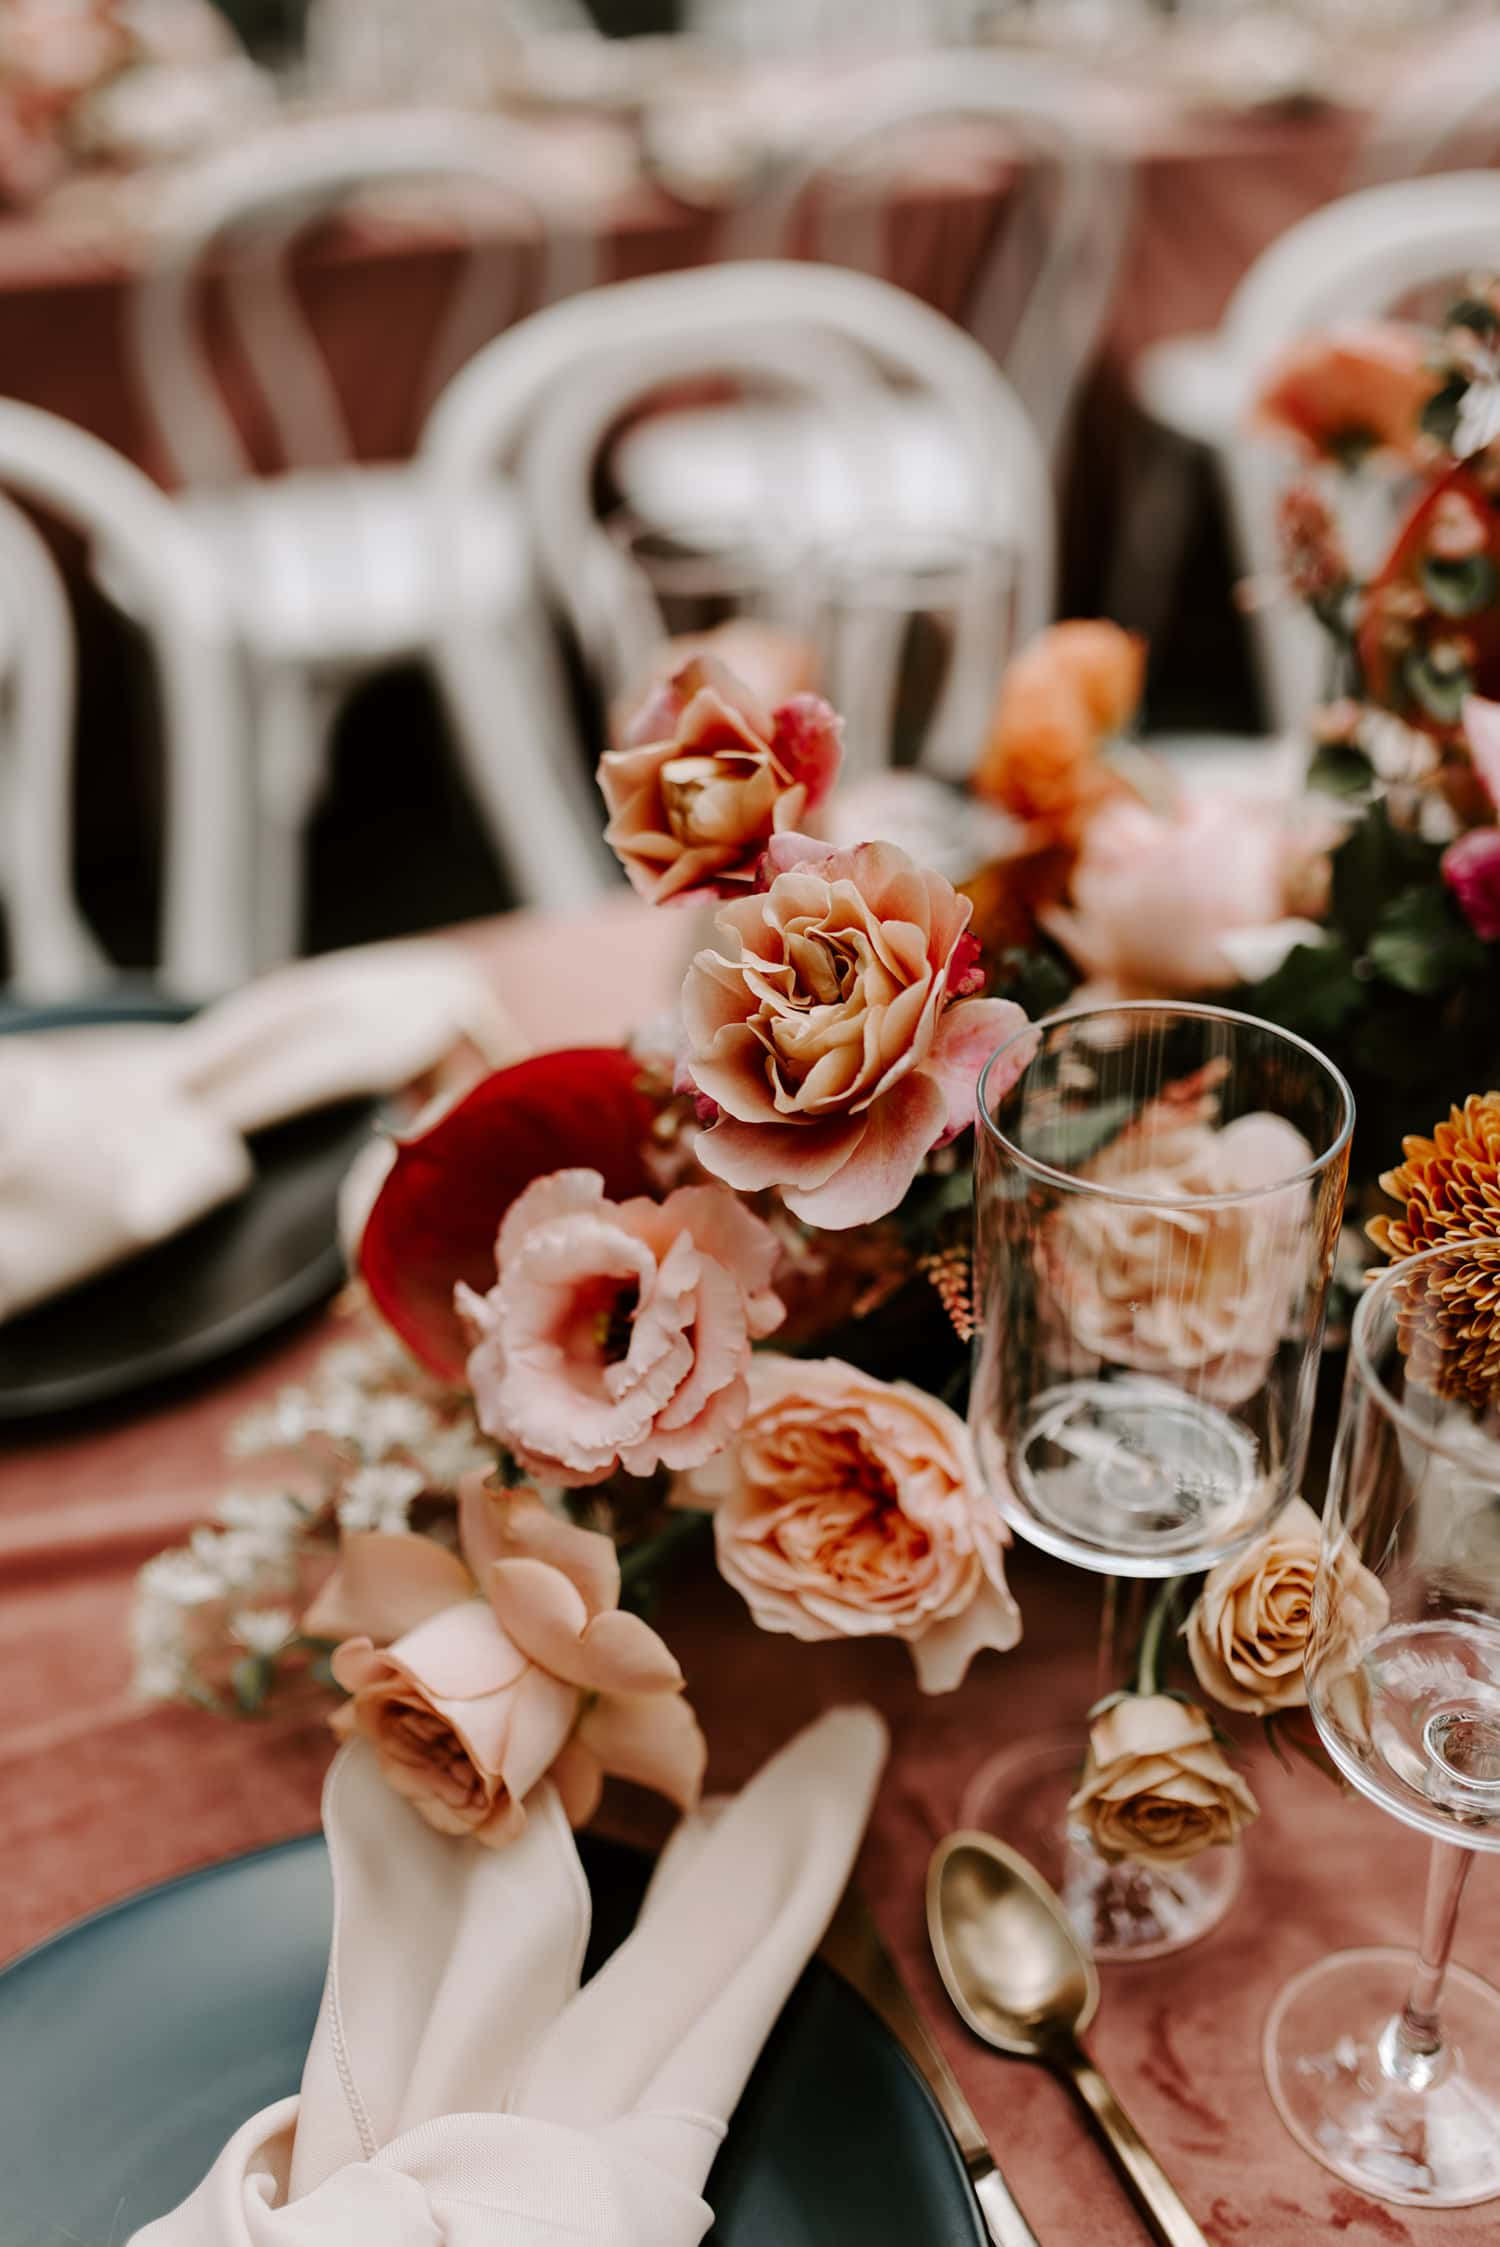 Copy of Floral centerpieces in wooded wedding